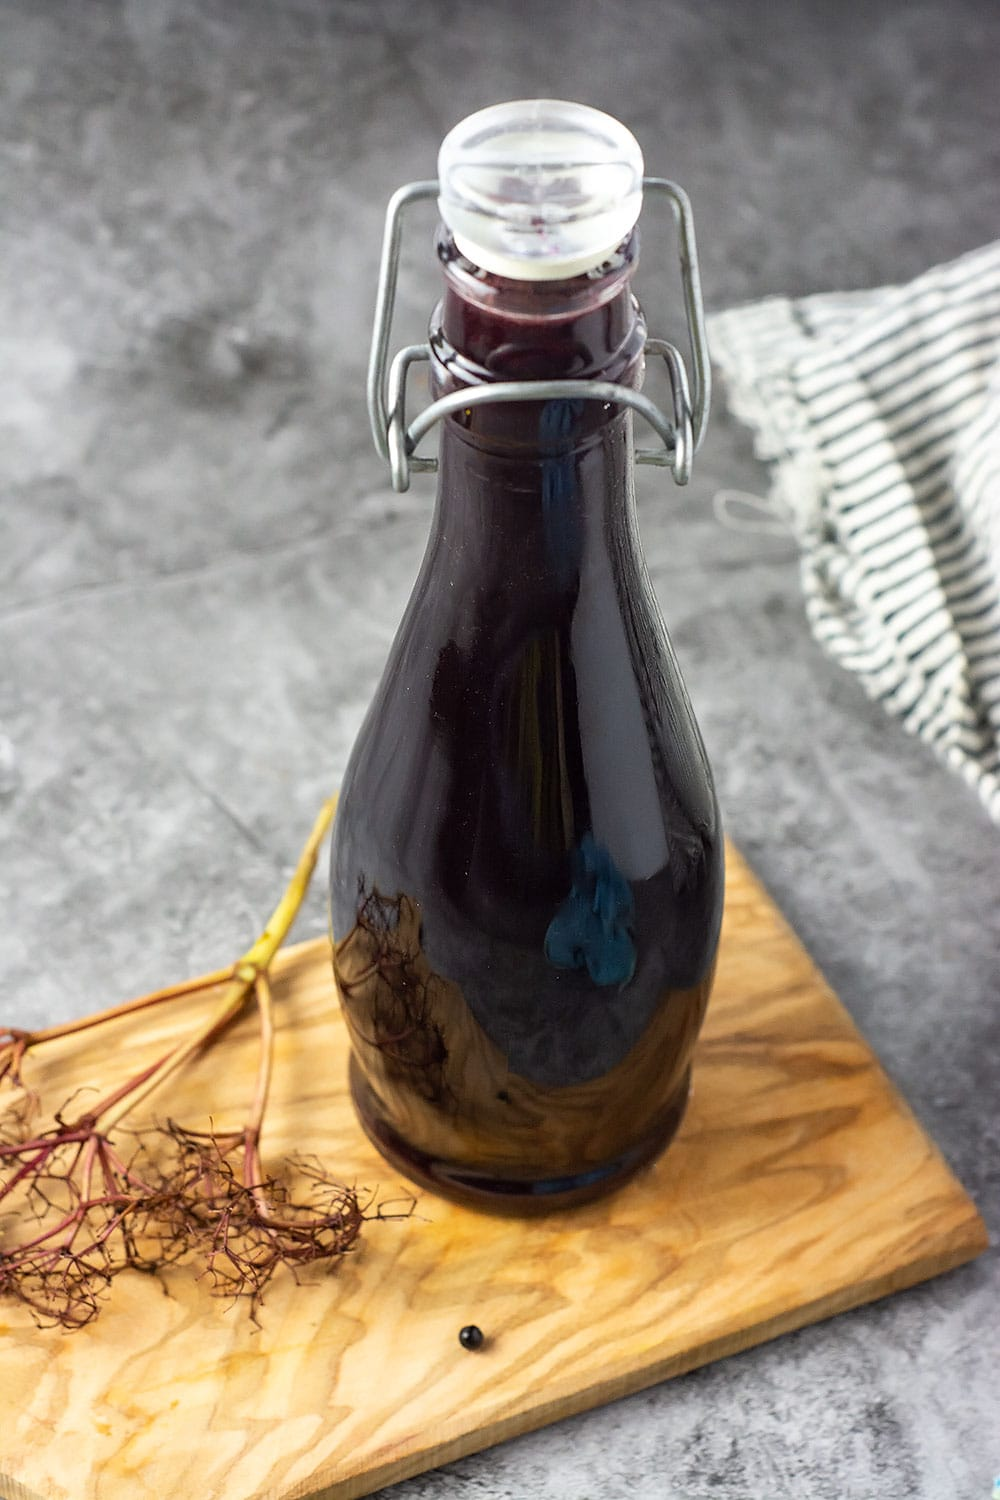 Elderberry syrup recipe in a glass jar on a wooden cutting board with a stem of elderberry on a concrete background